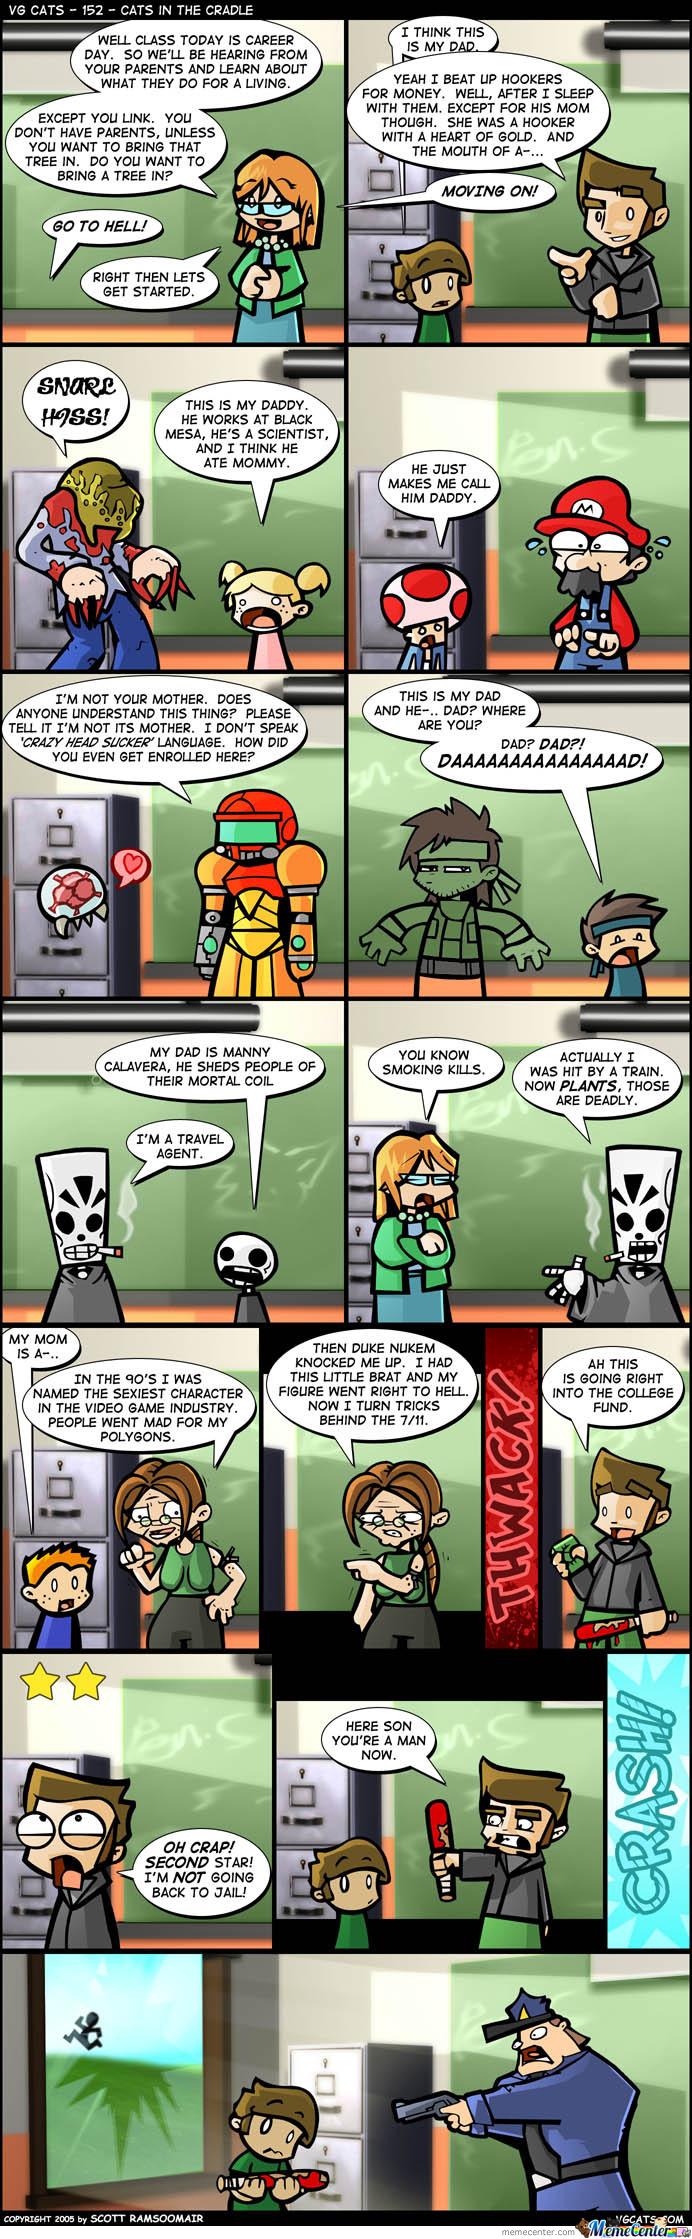 Career Day For Video-Game Characters